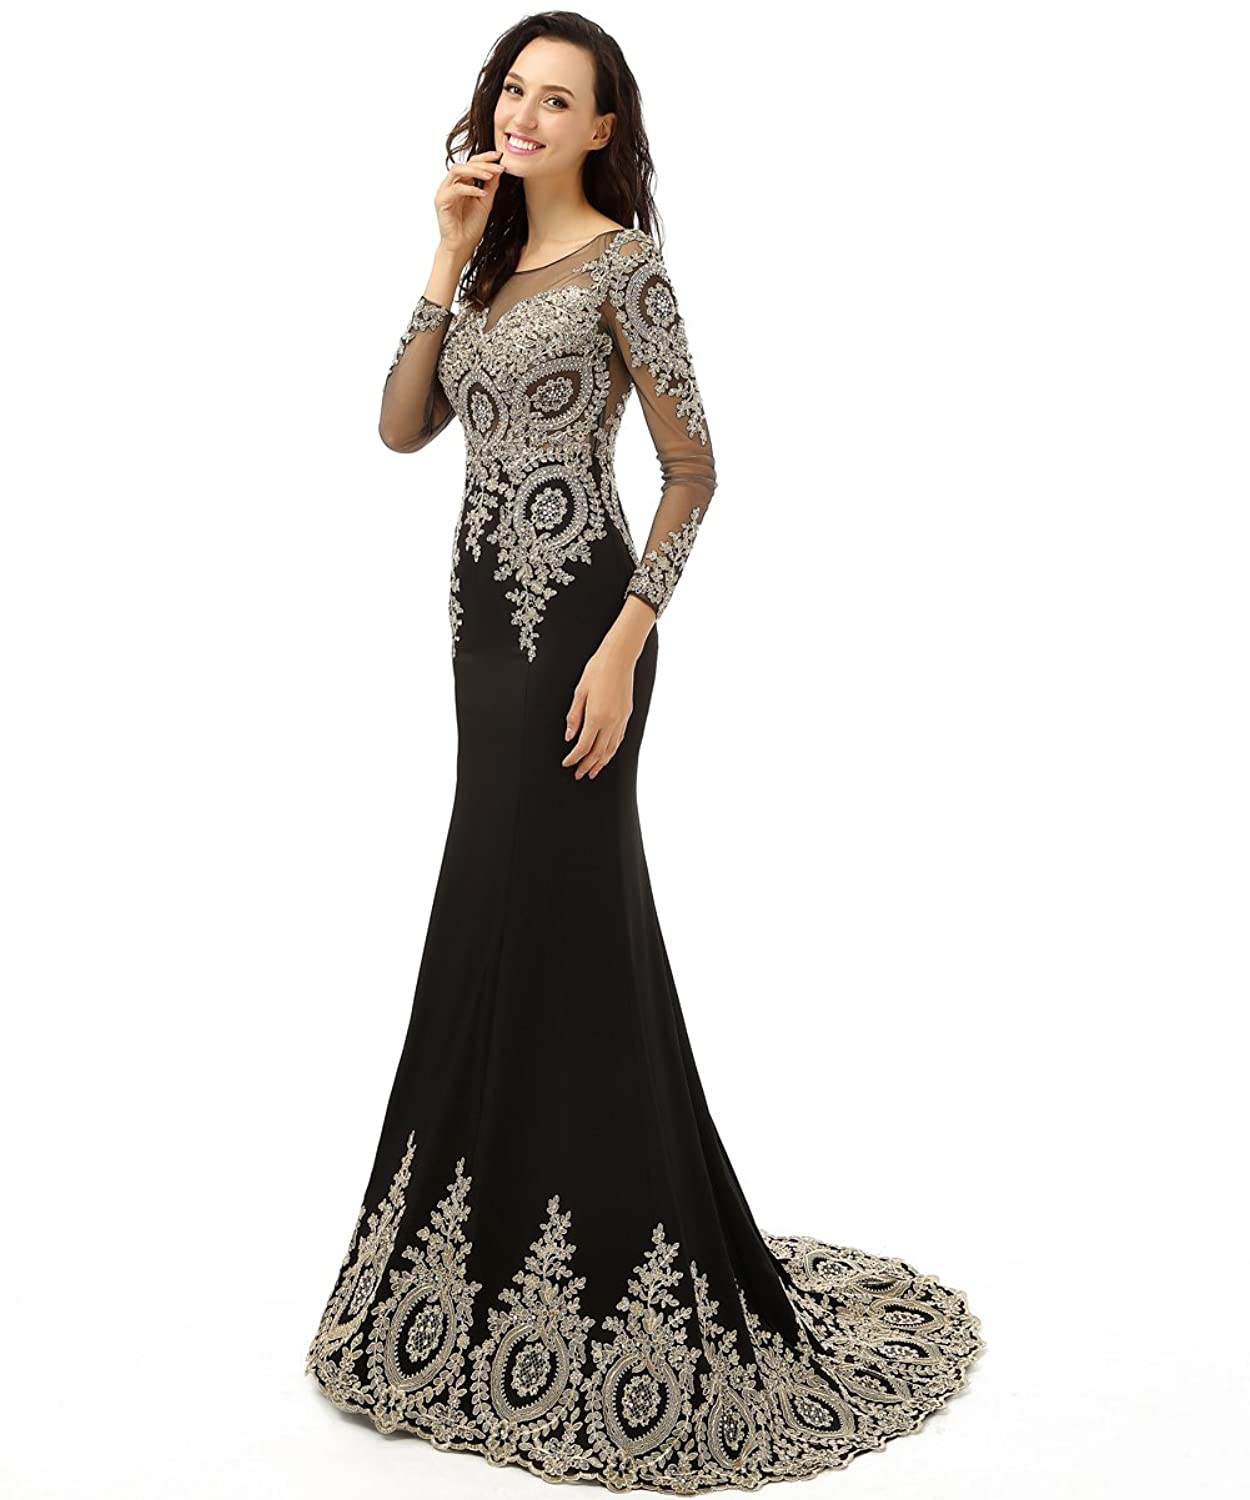 Babyonline trumpet long evening dress lace beads cap sleeve party prom gowns